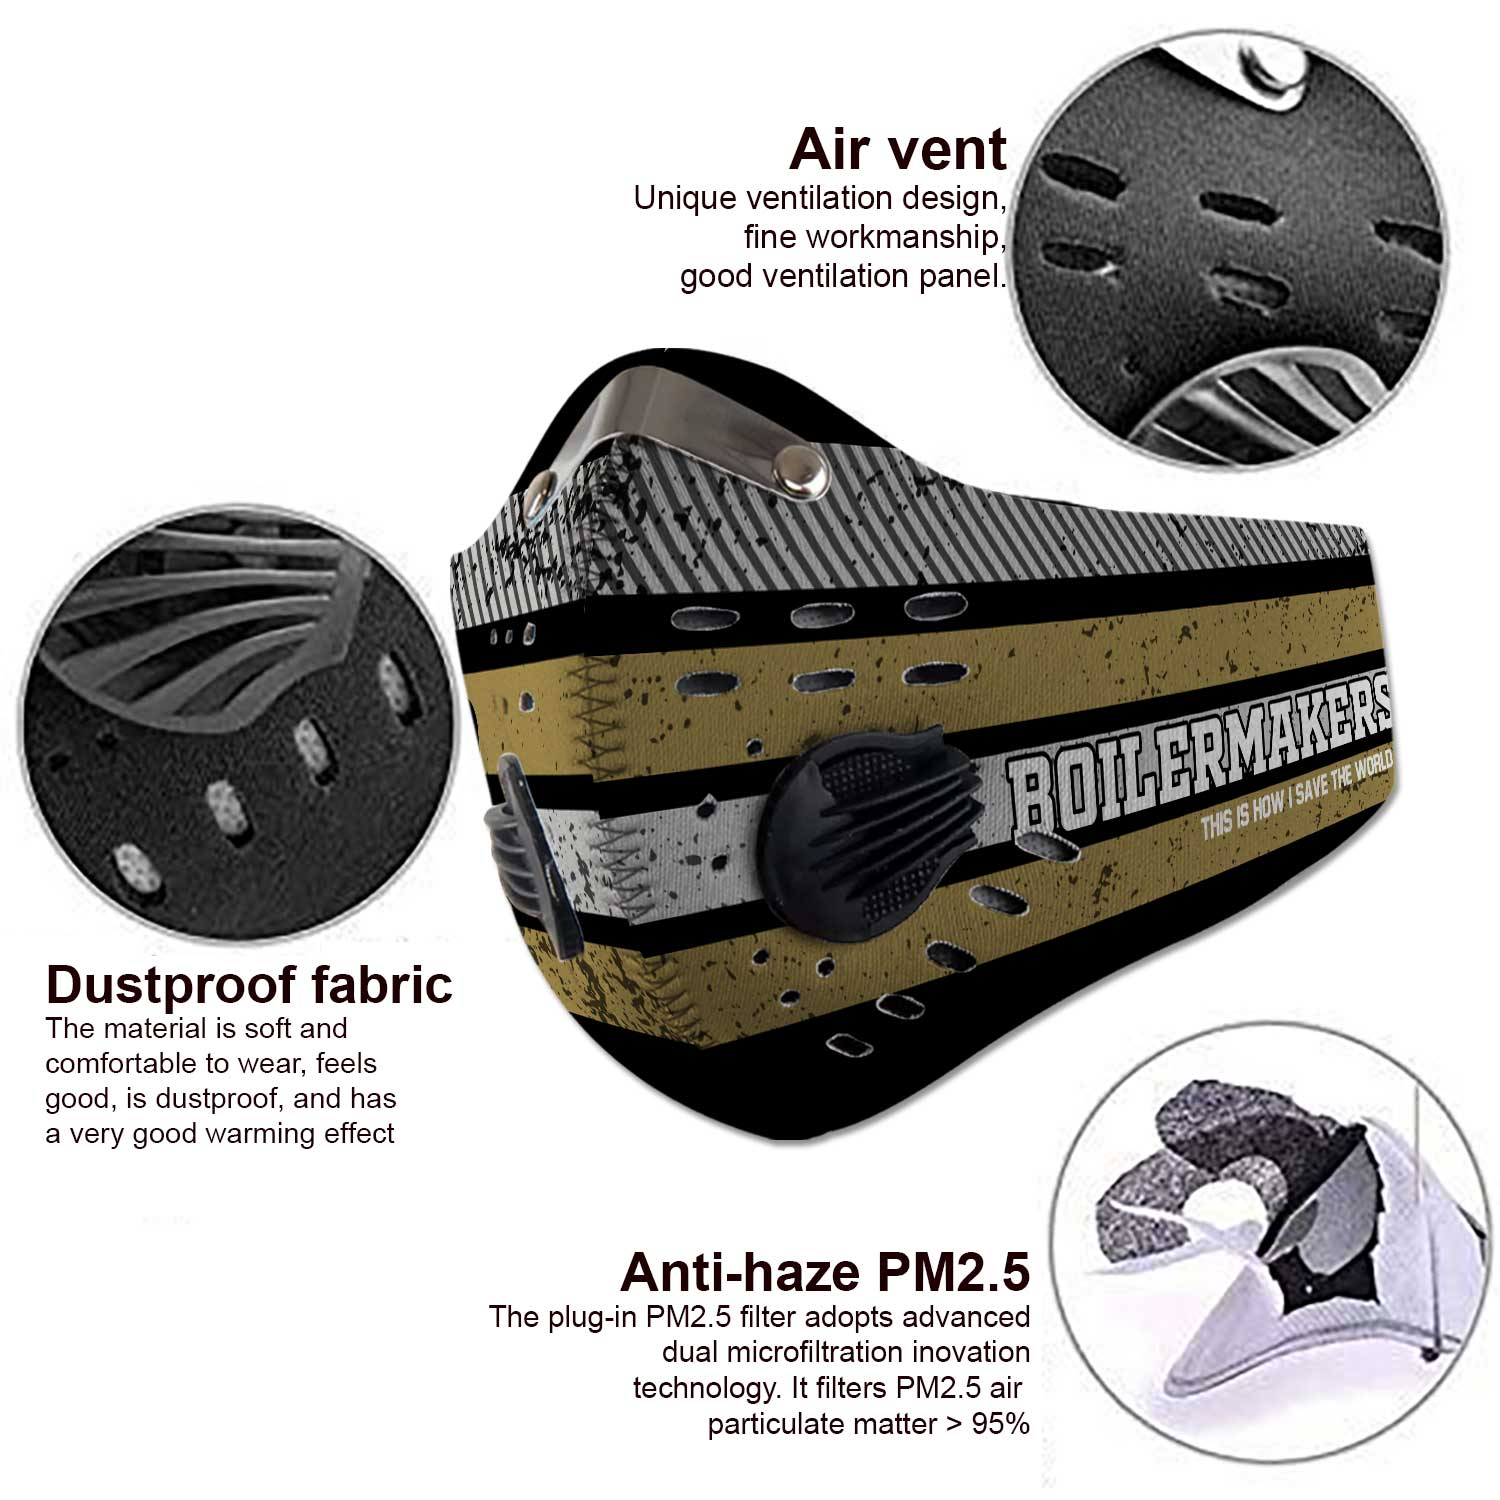 Purdue boilermakers this is how i save the world carbon filter face mask 4